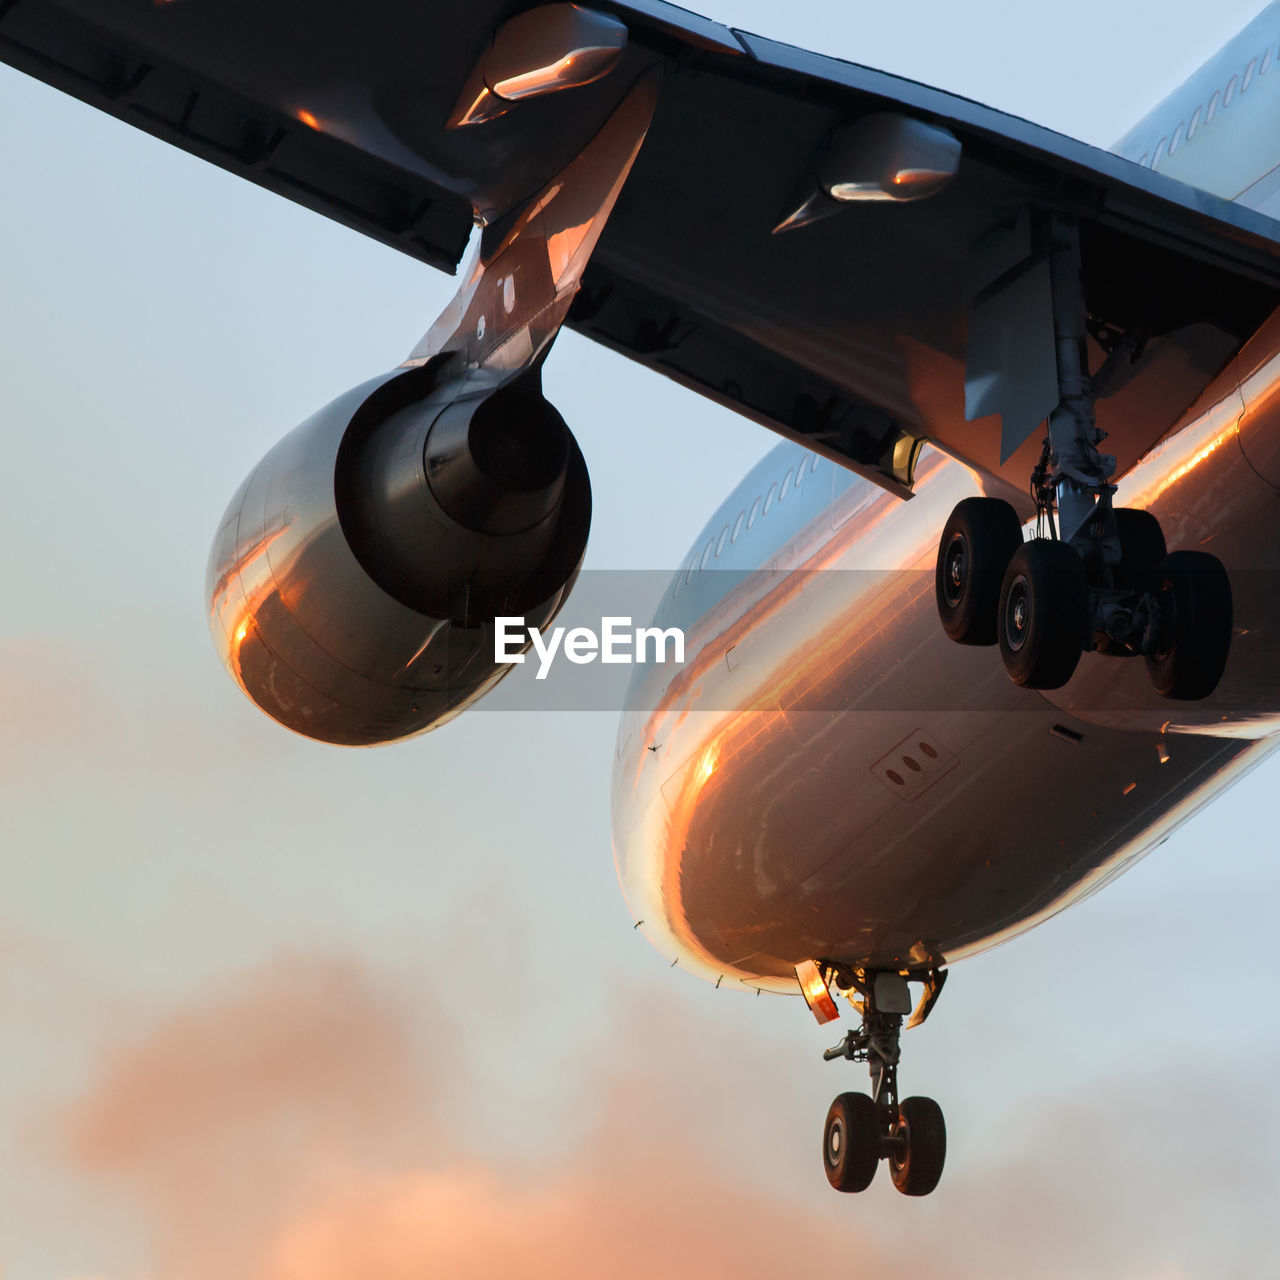 LOW ANGLE VIEW OF AIRPLANE AGAINST SKY DURING SUNSET